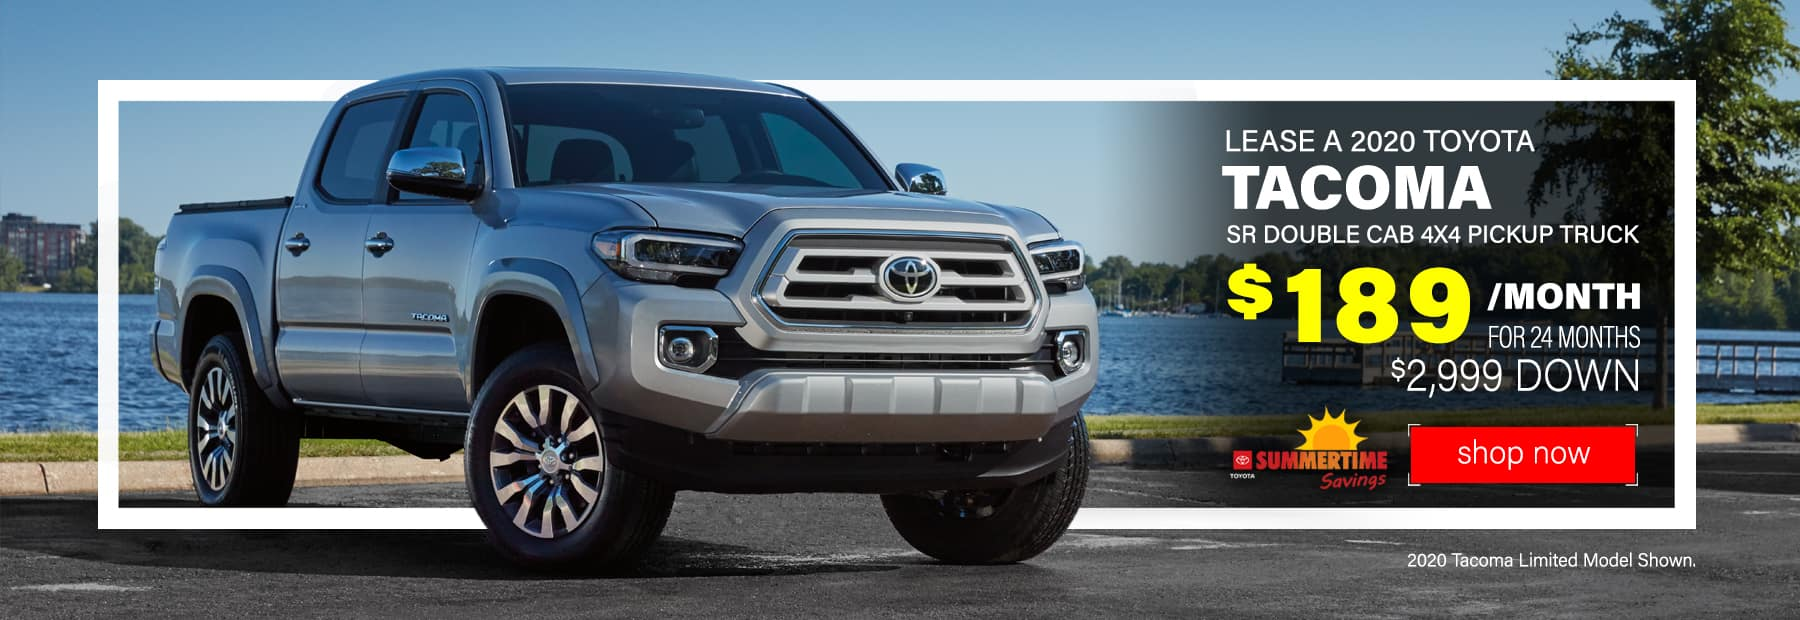 Lease a 2020 Toyota Tacoma SR Double Cab 4x4 Pickup Truck for $189/mo. for 24 mos. with $2,999 down